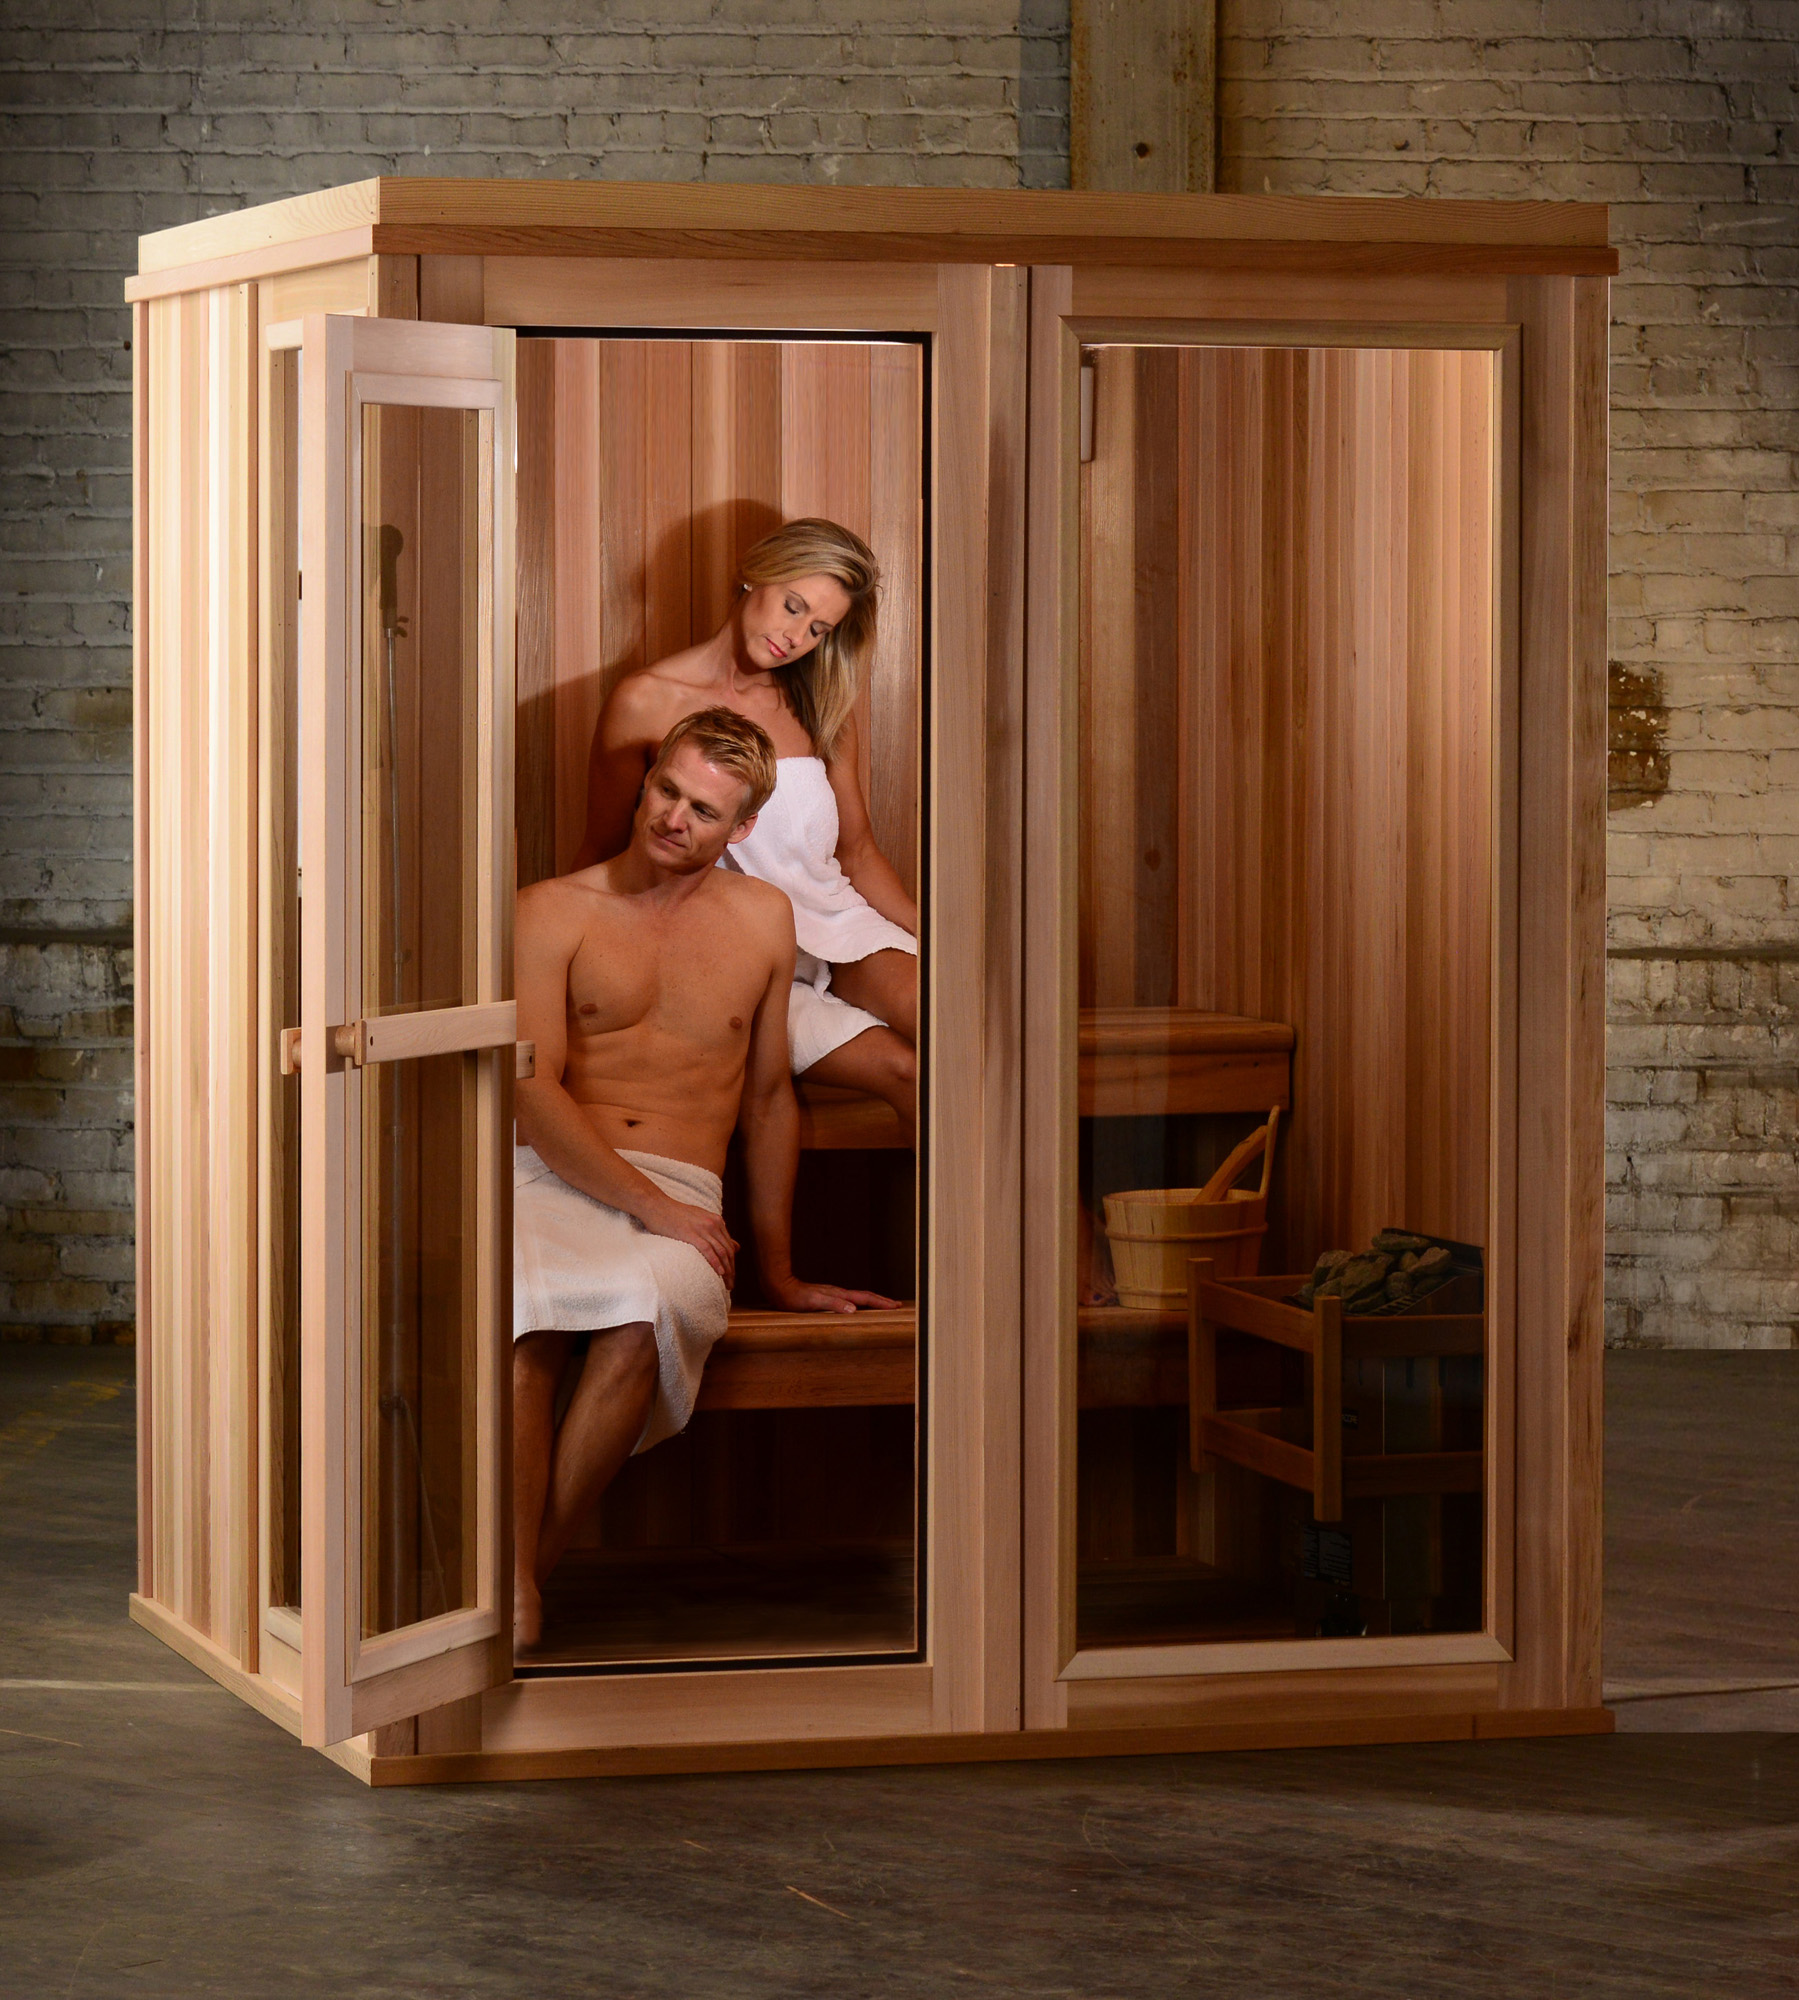 Almost Heaven Saunas Introduces New Sauna Model At Costco